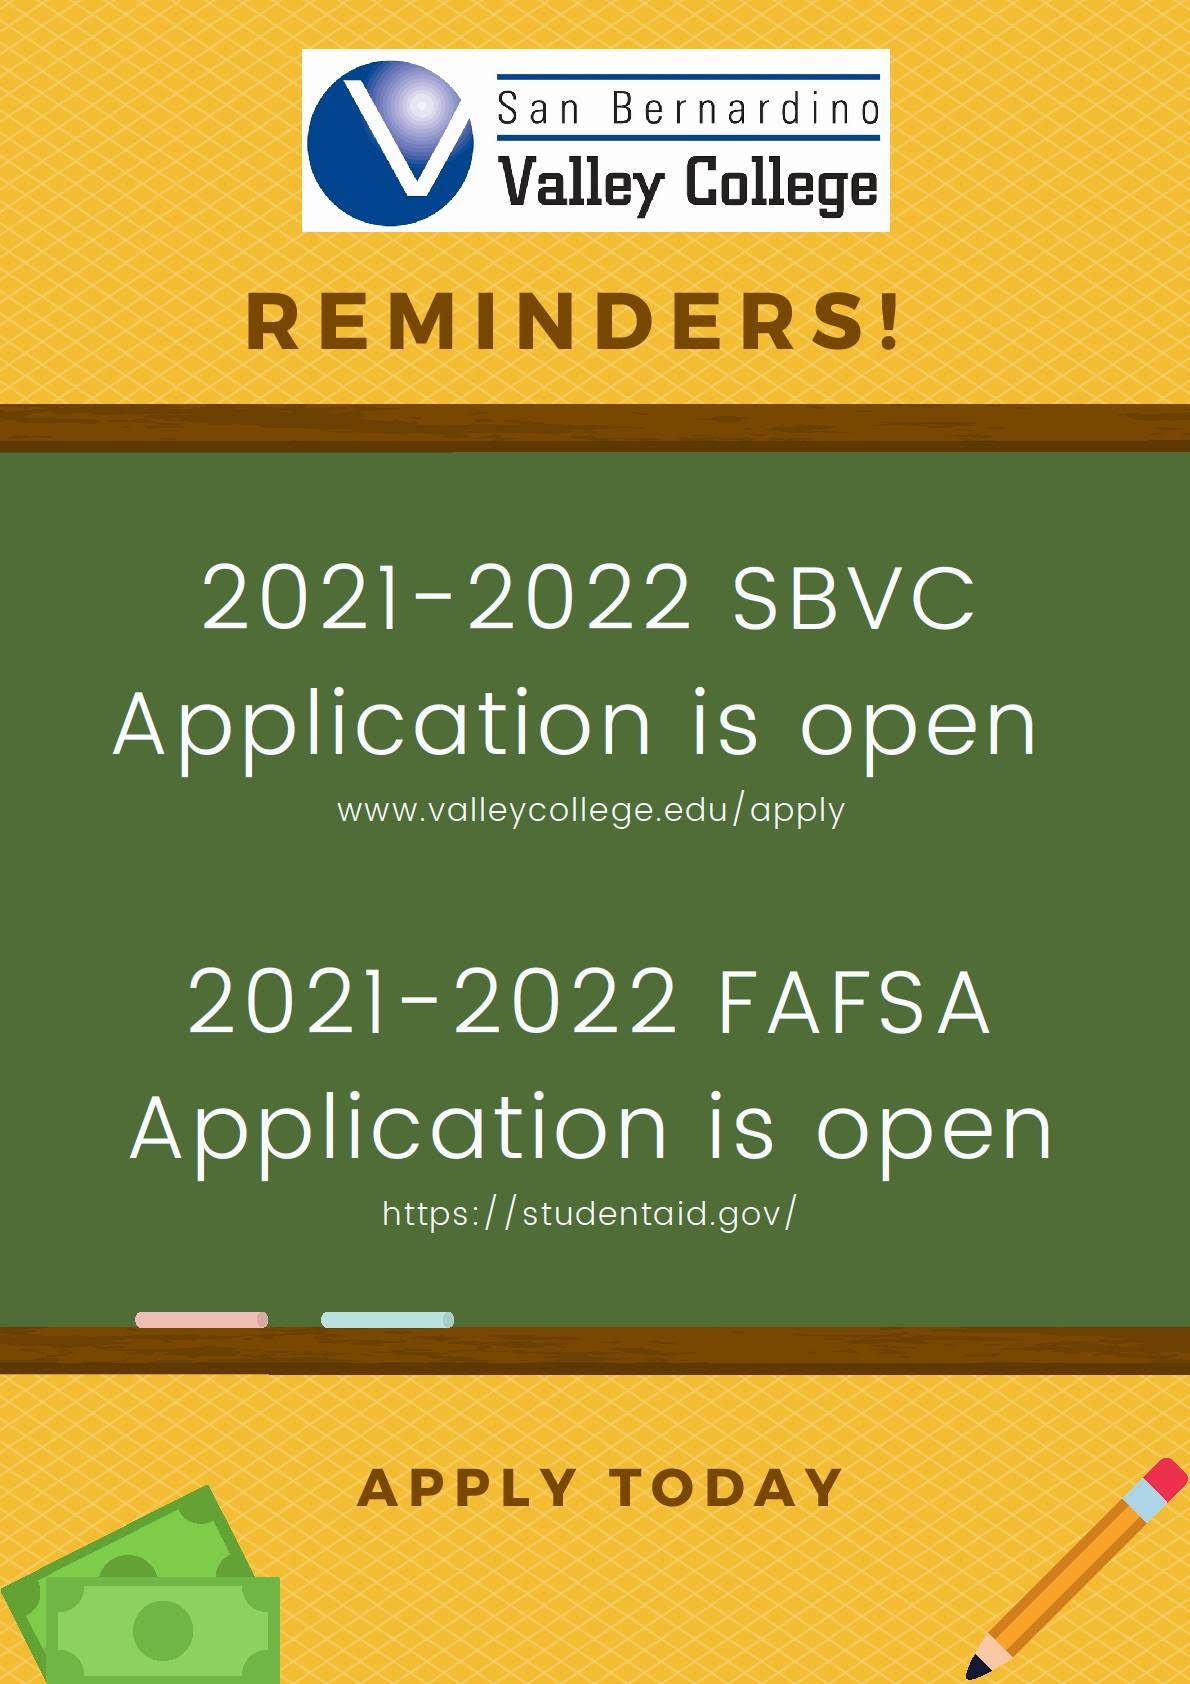 Flyer: 2021-2022 SBVC application is open, 2021-2022 FAFSA is open